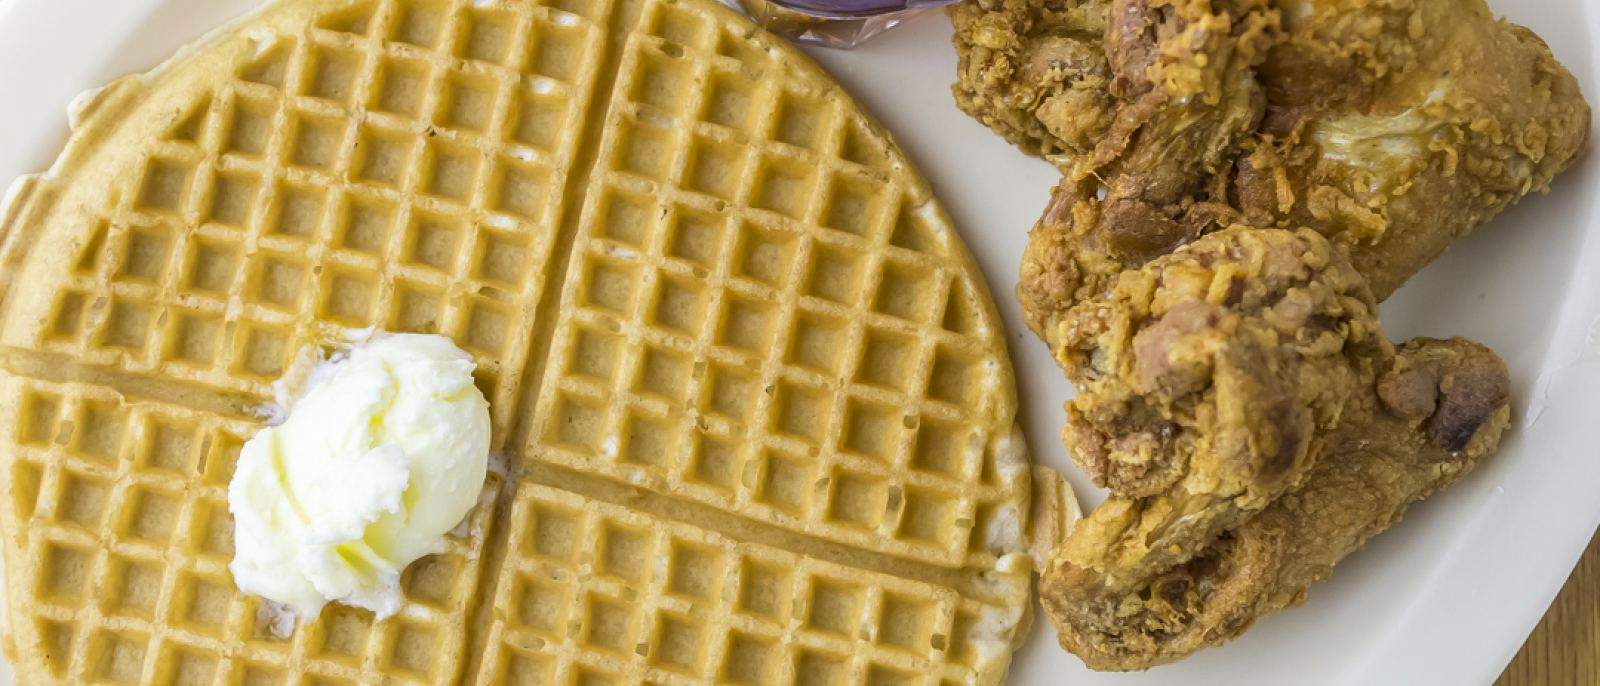 Obama's Special at Roscoe's House of Chicken and Waffles